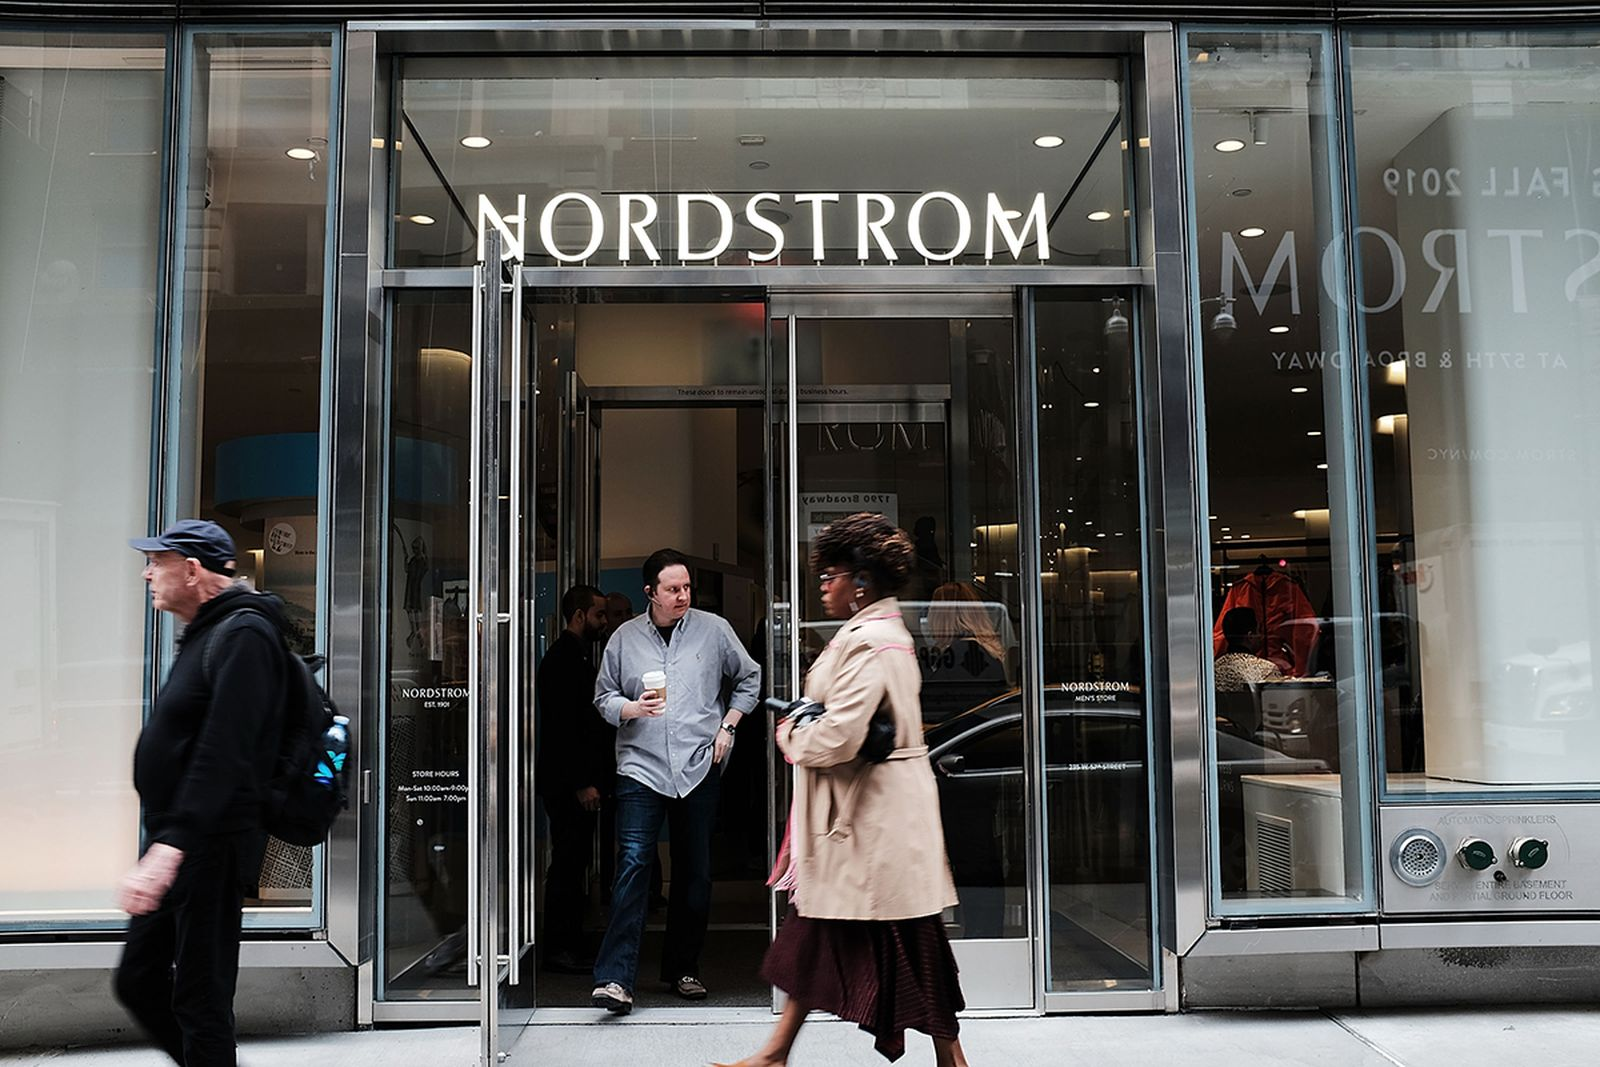 Nordstrom store sign